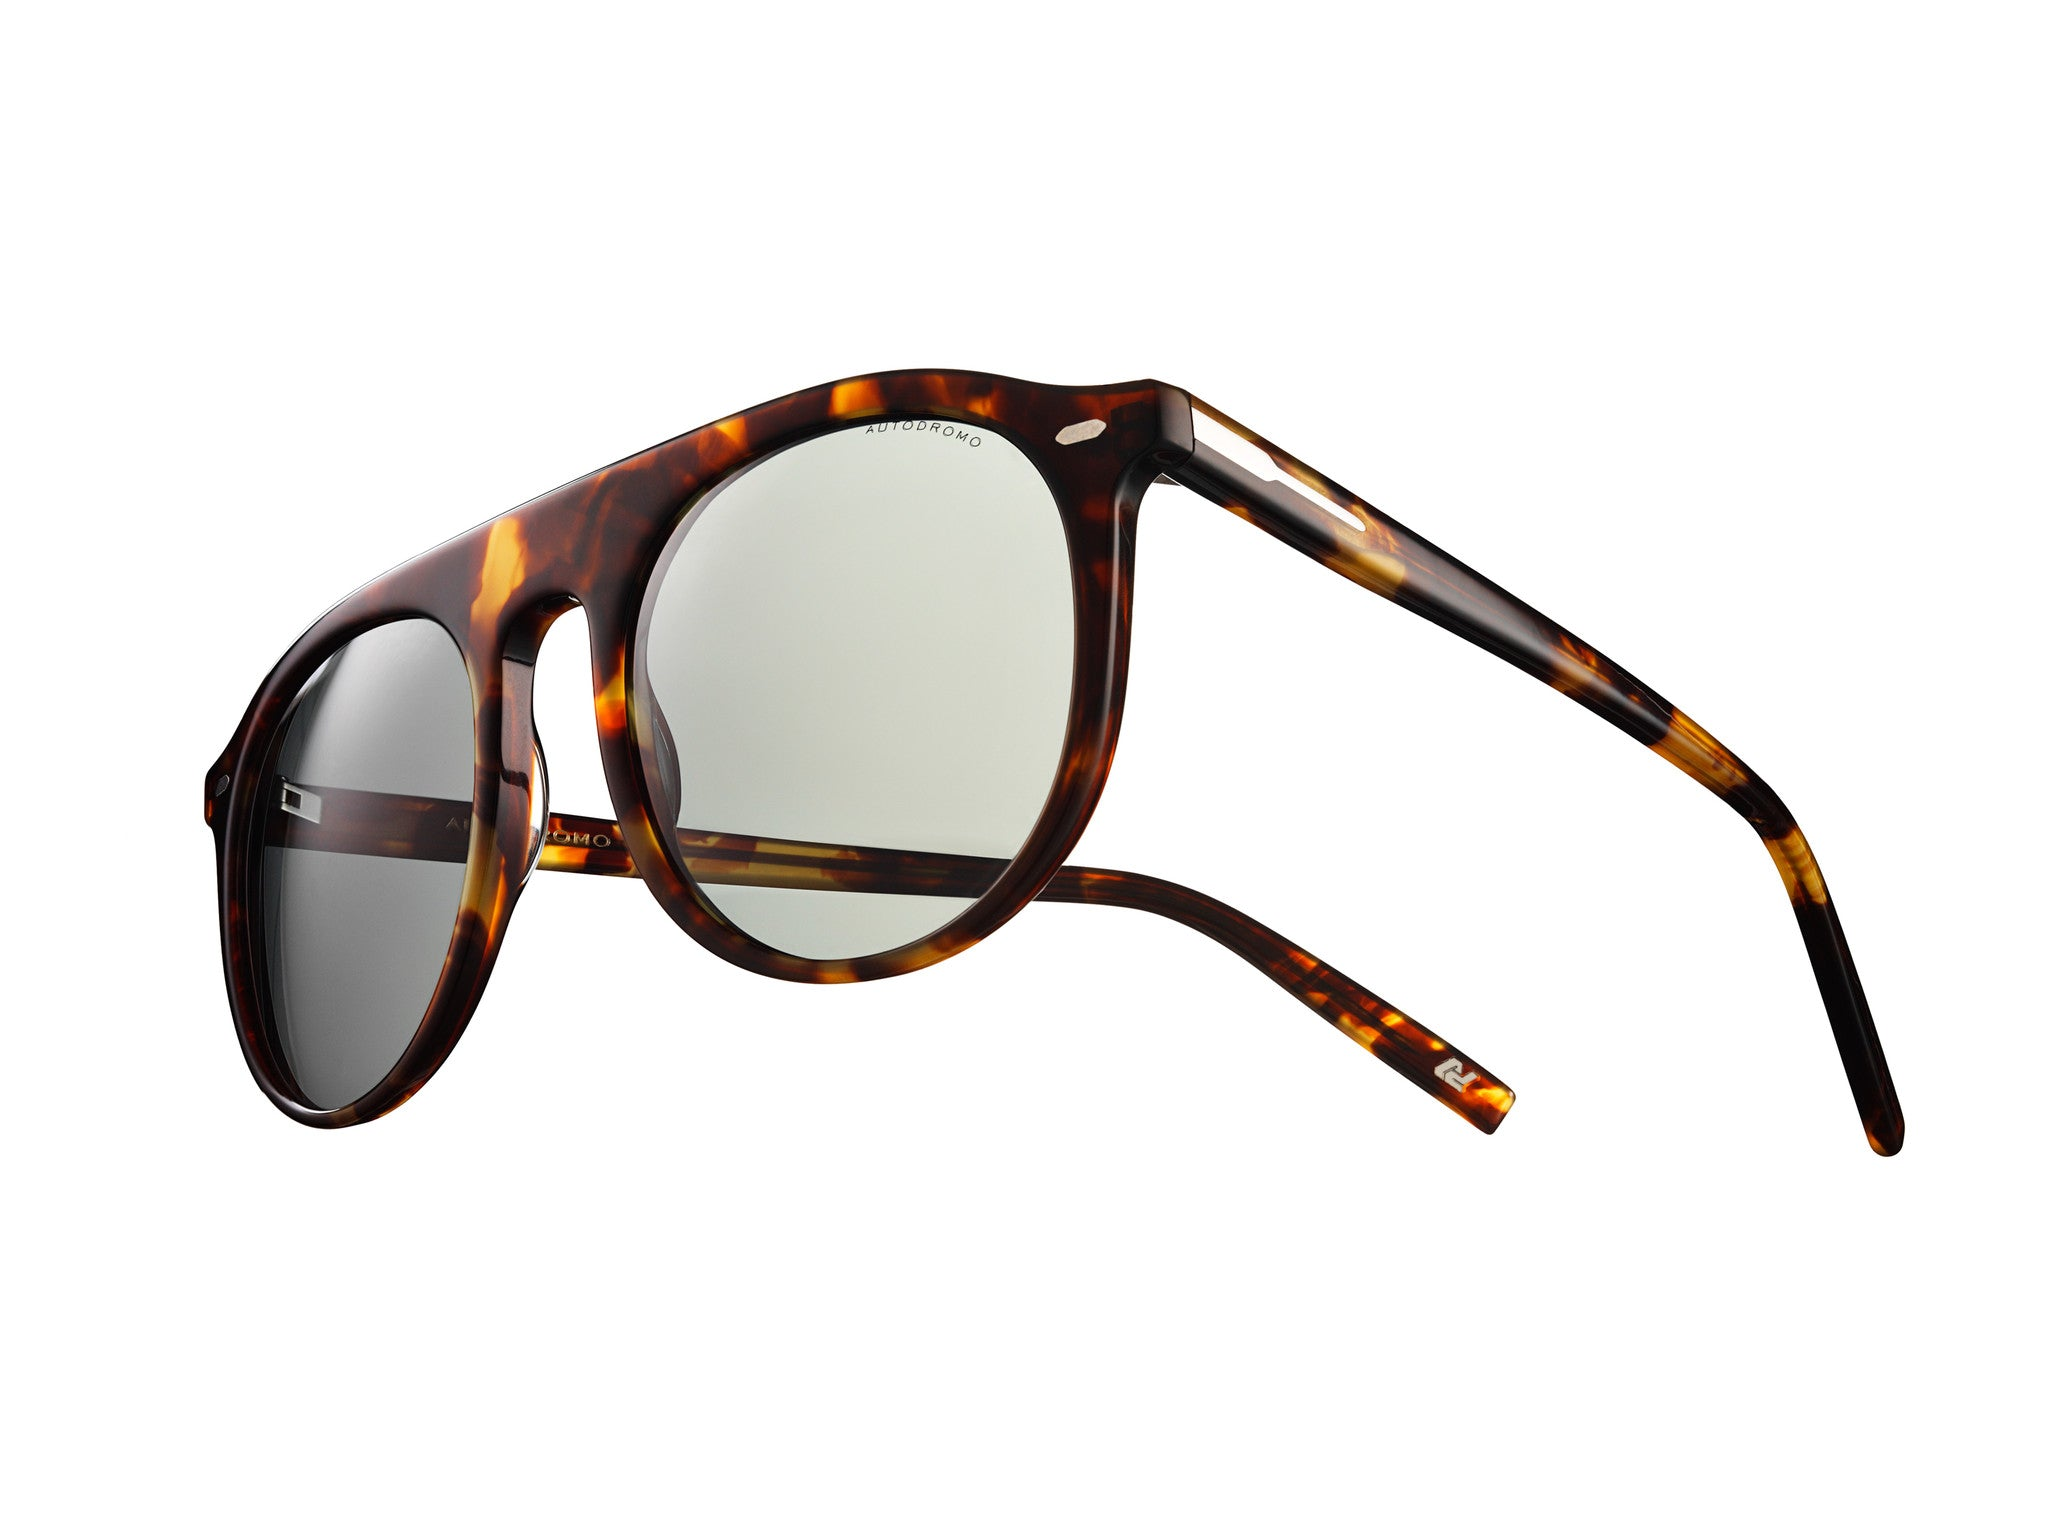 Stelvio Sunglasses